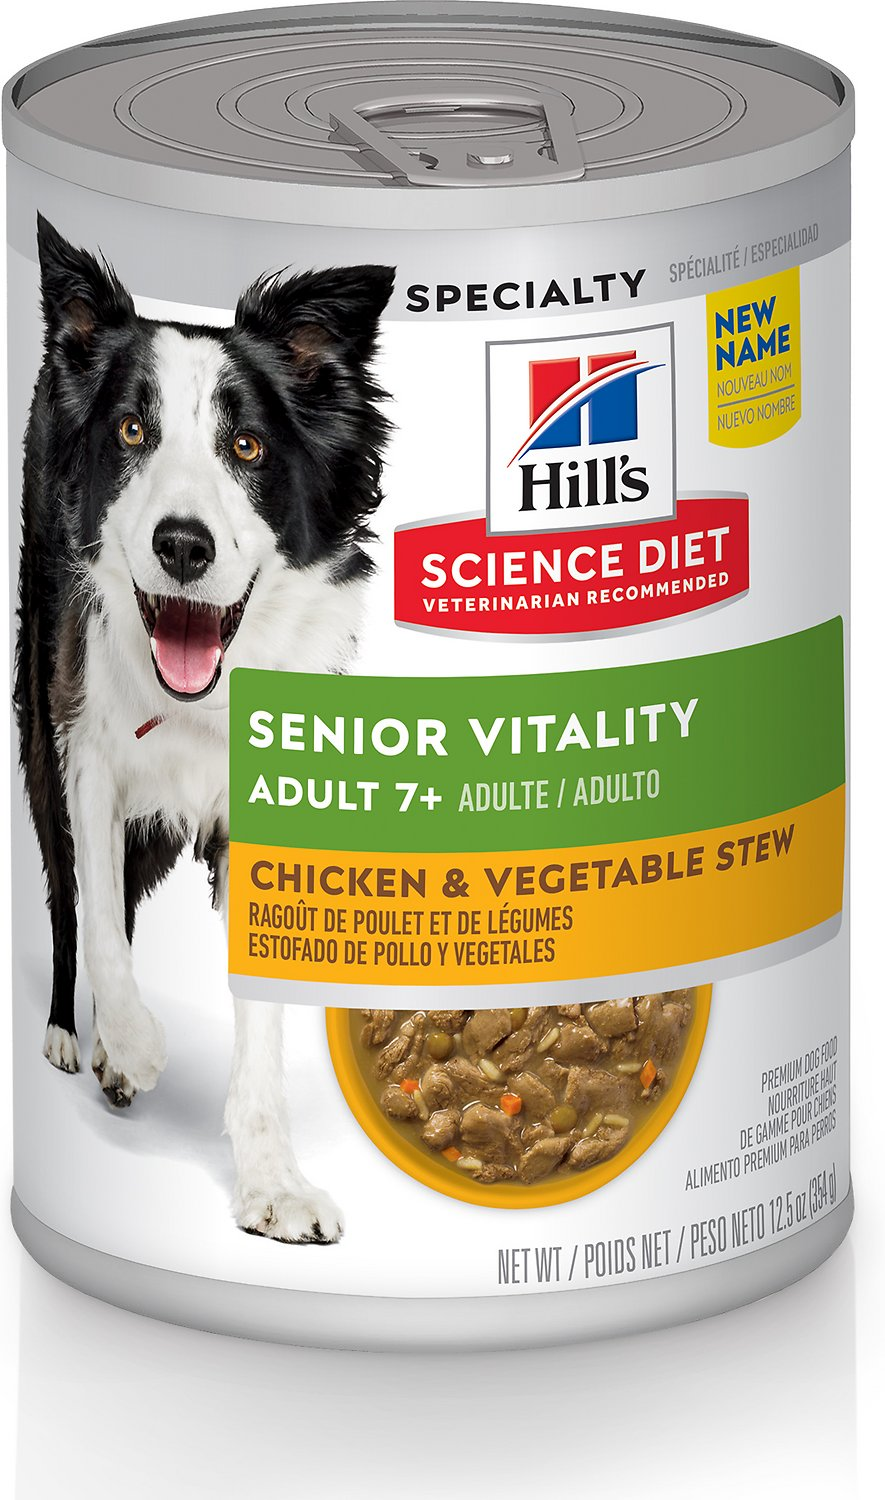 Science Diet Allergy Free Dog Food